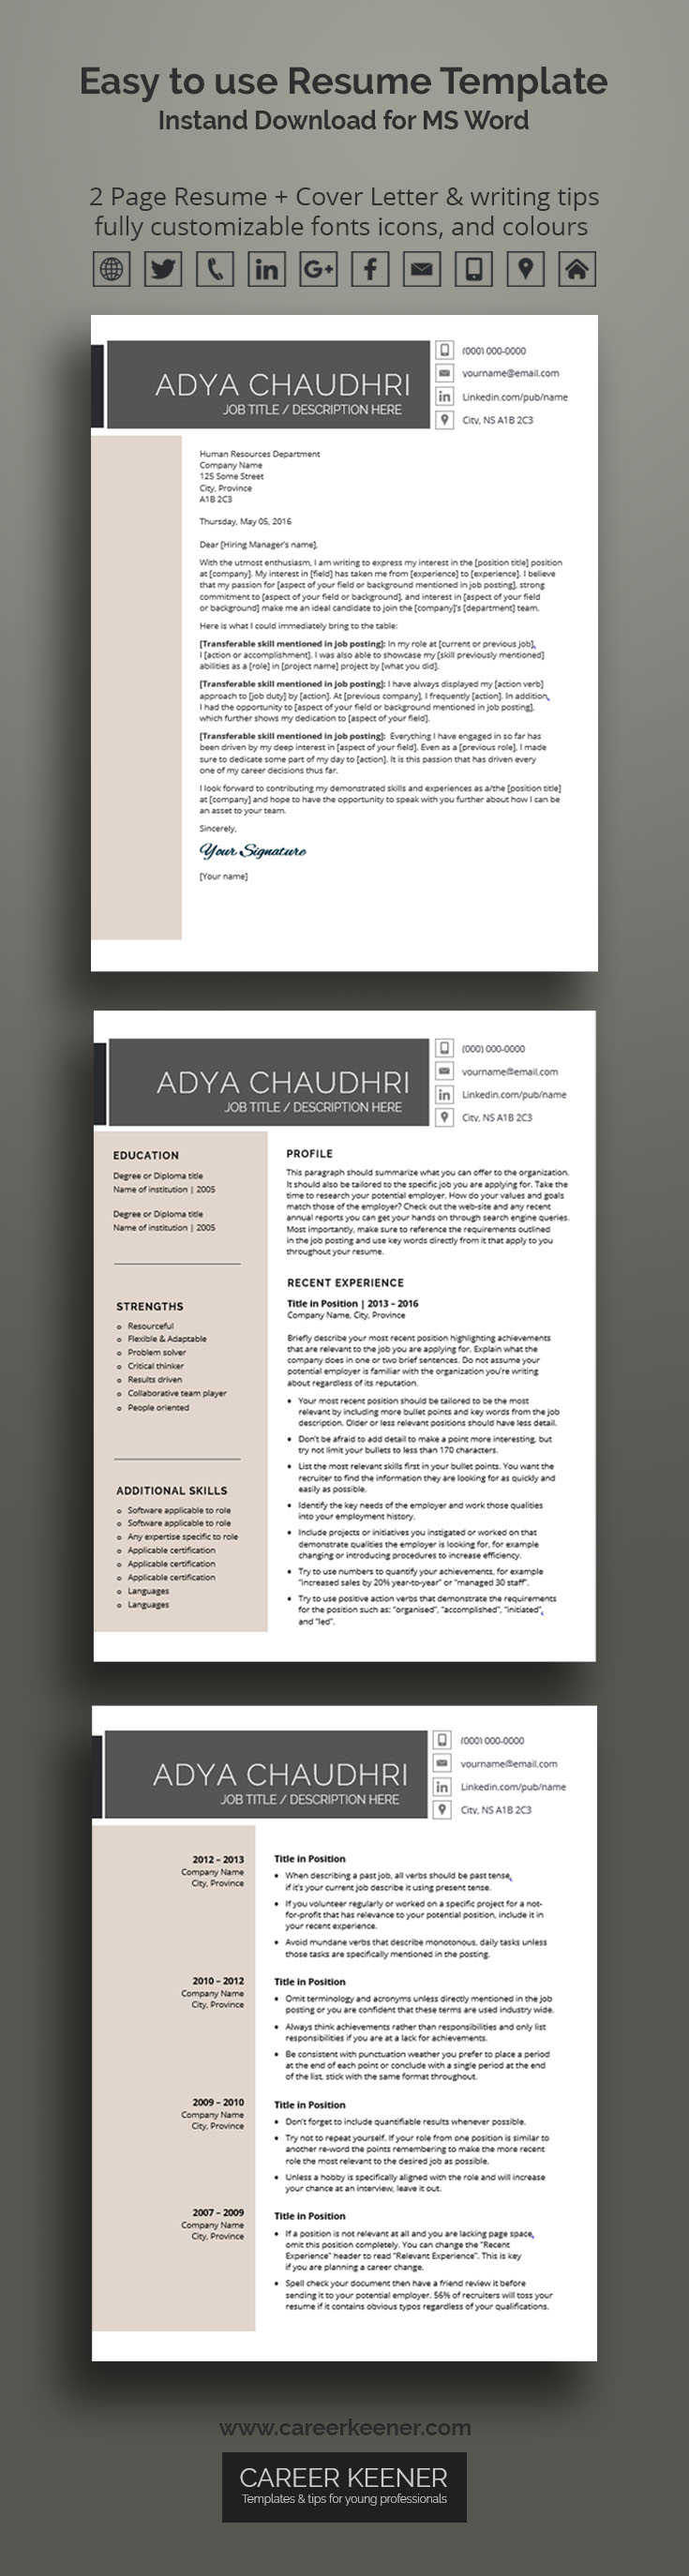 modern resume template resume   cover letter for ms word includes writing tips fully